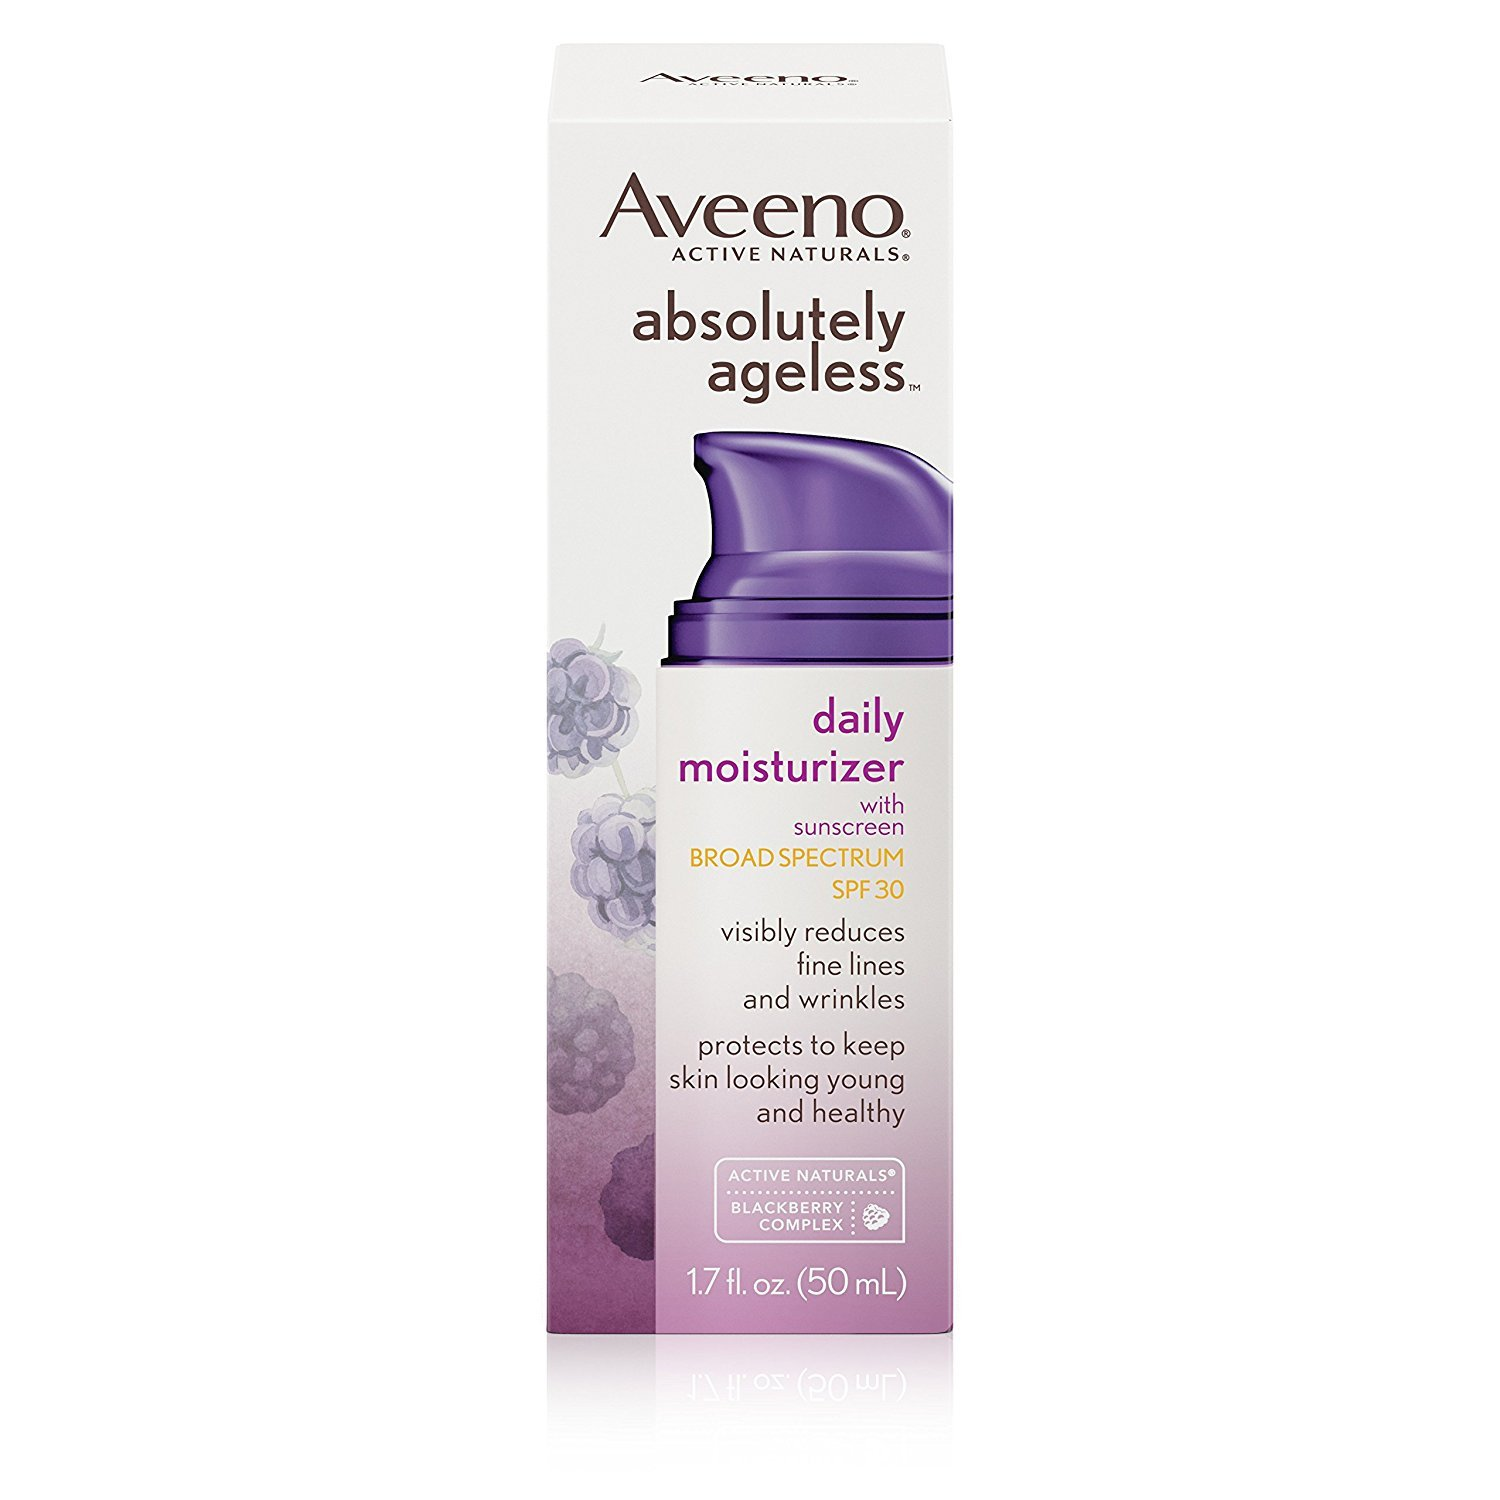 Aveeno Absolutely Ageless Daily Moisturizer 1.7 Ounce (50ml) (2 Pack)